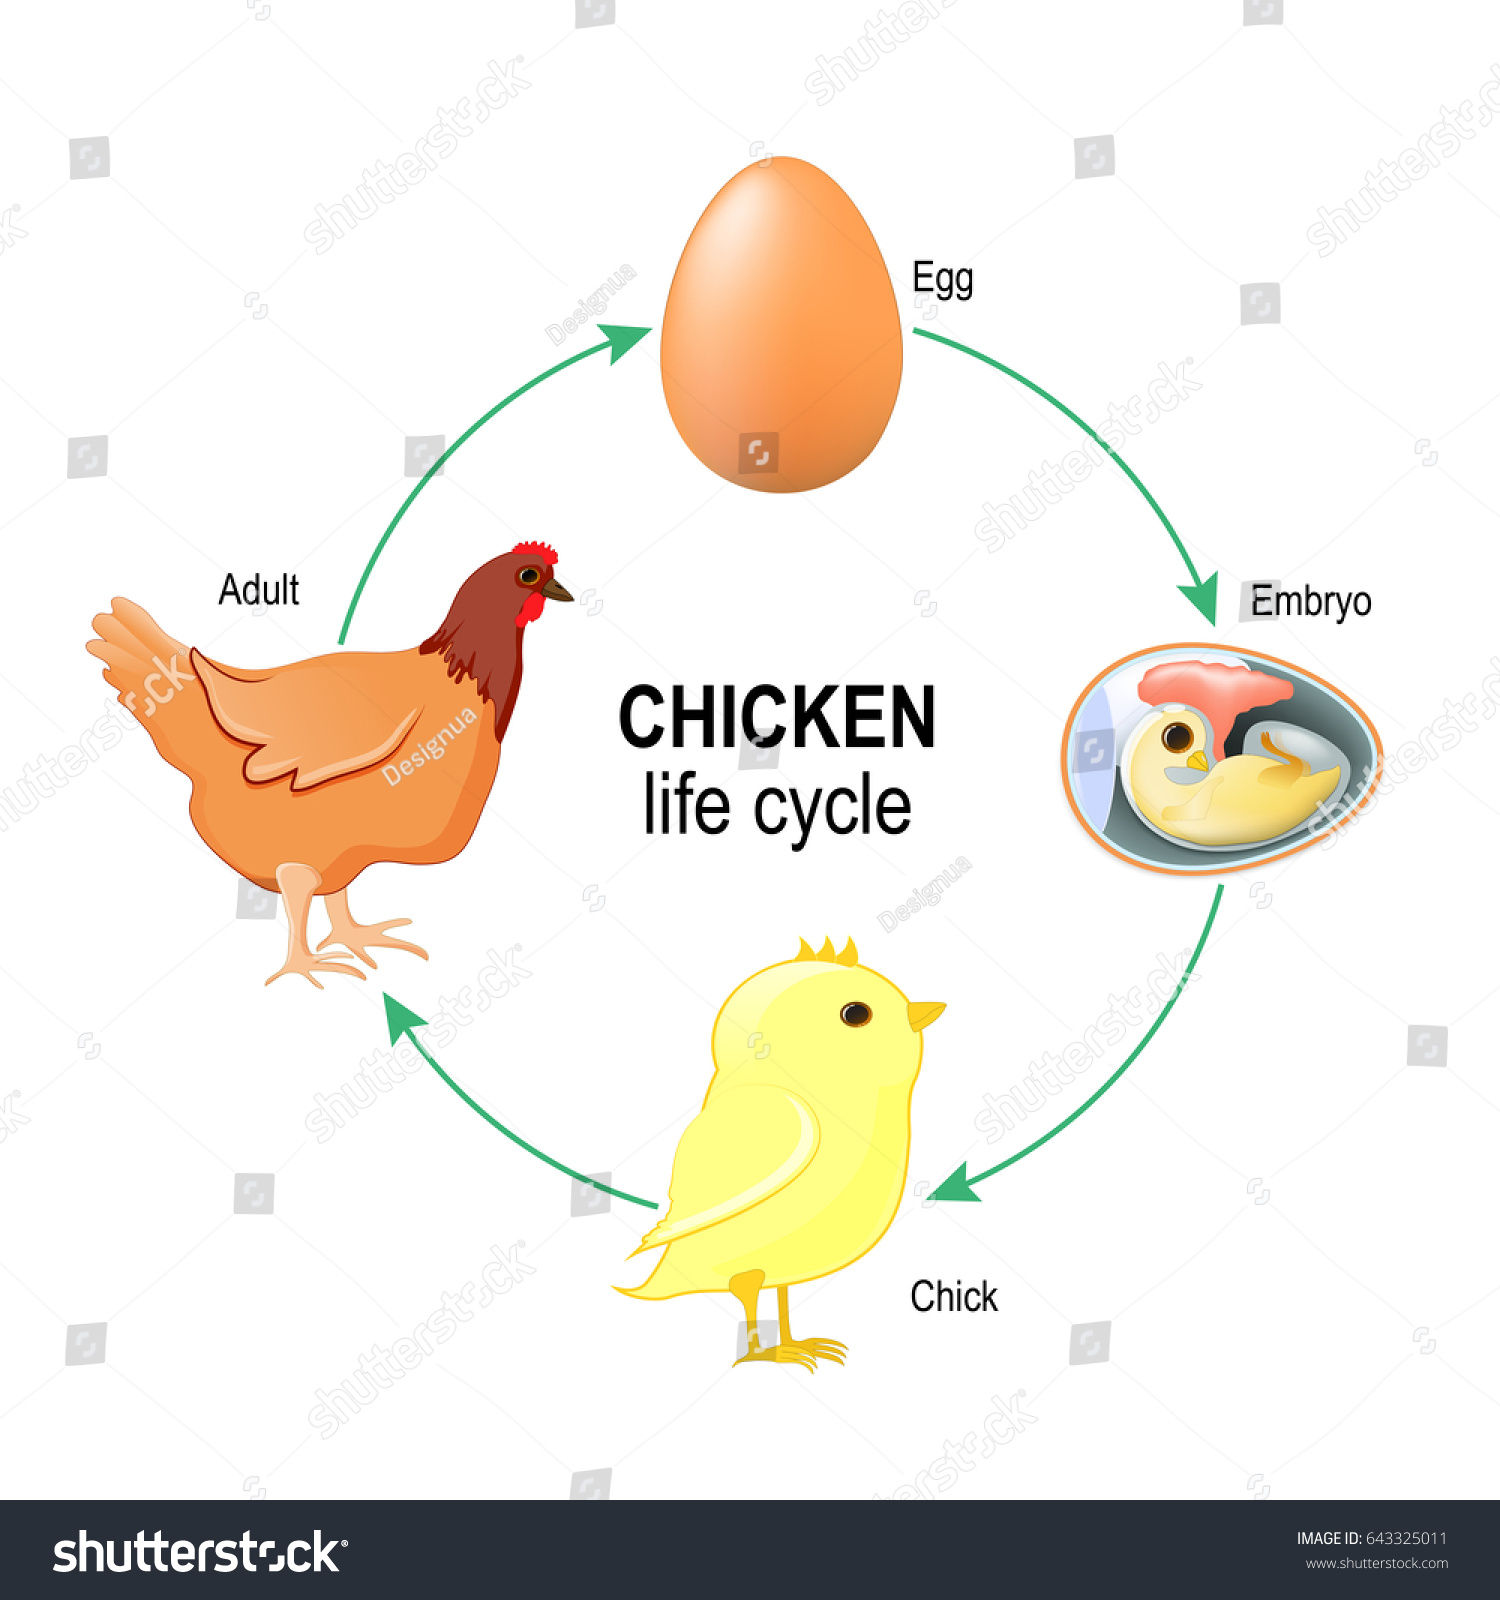 Chicken Life Cycle Egg Embryo Chick Stock Illustration